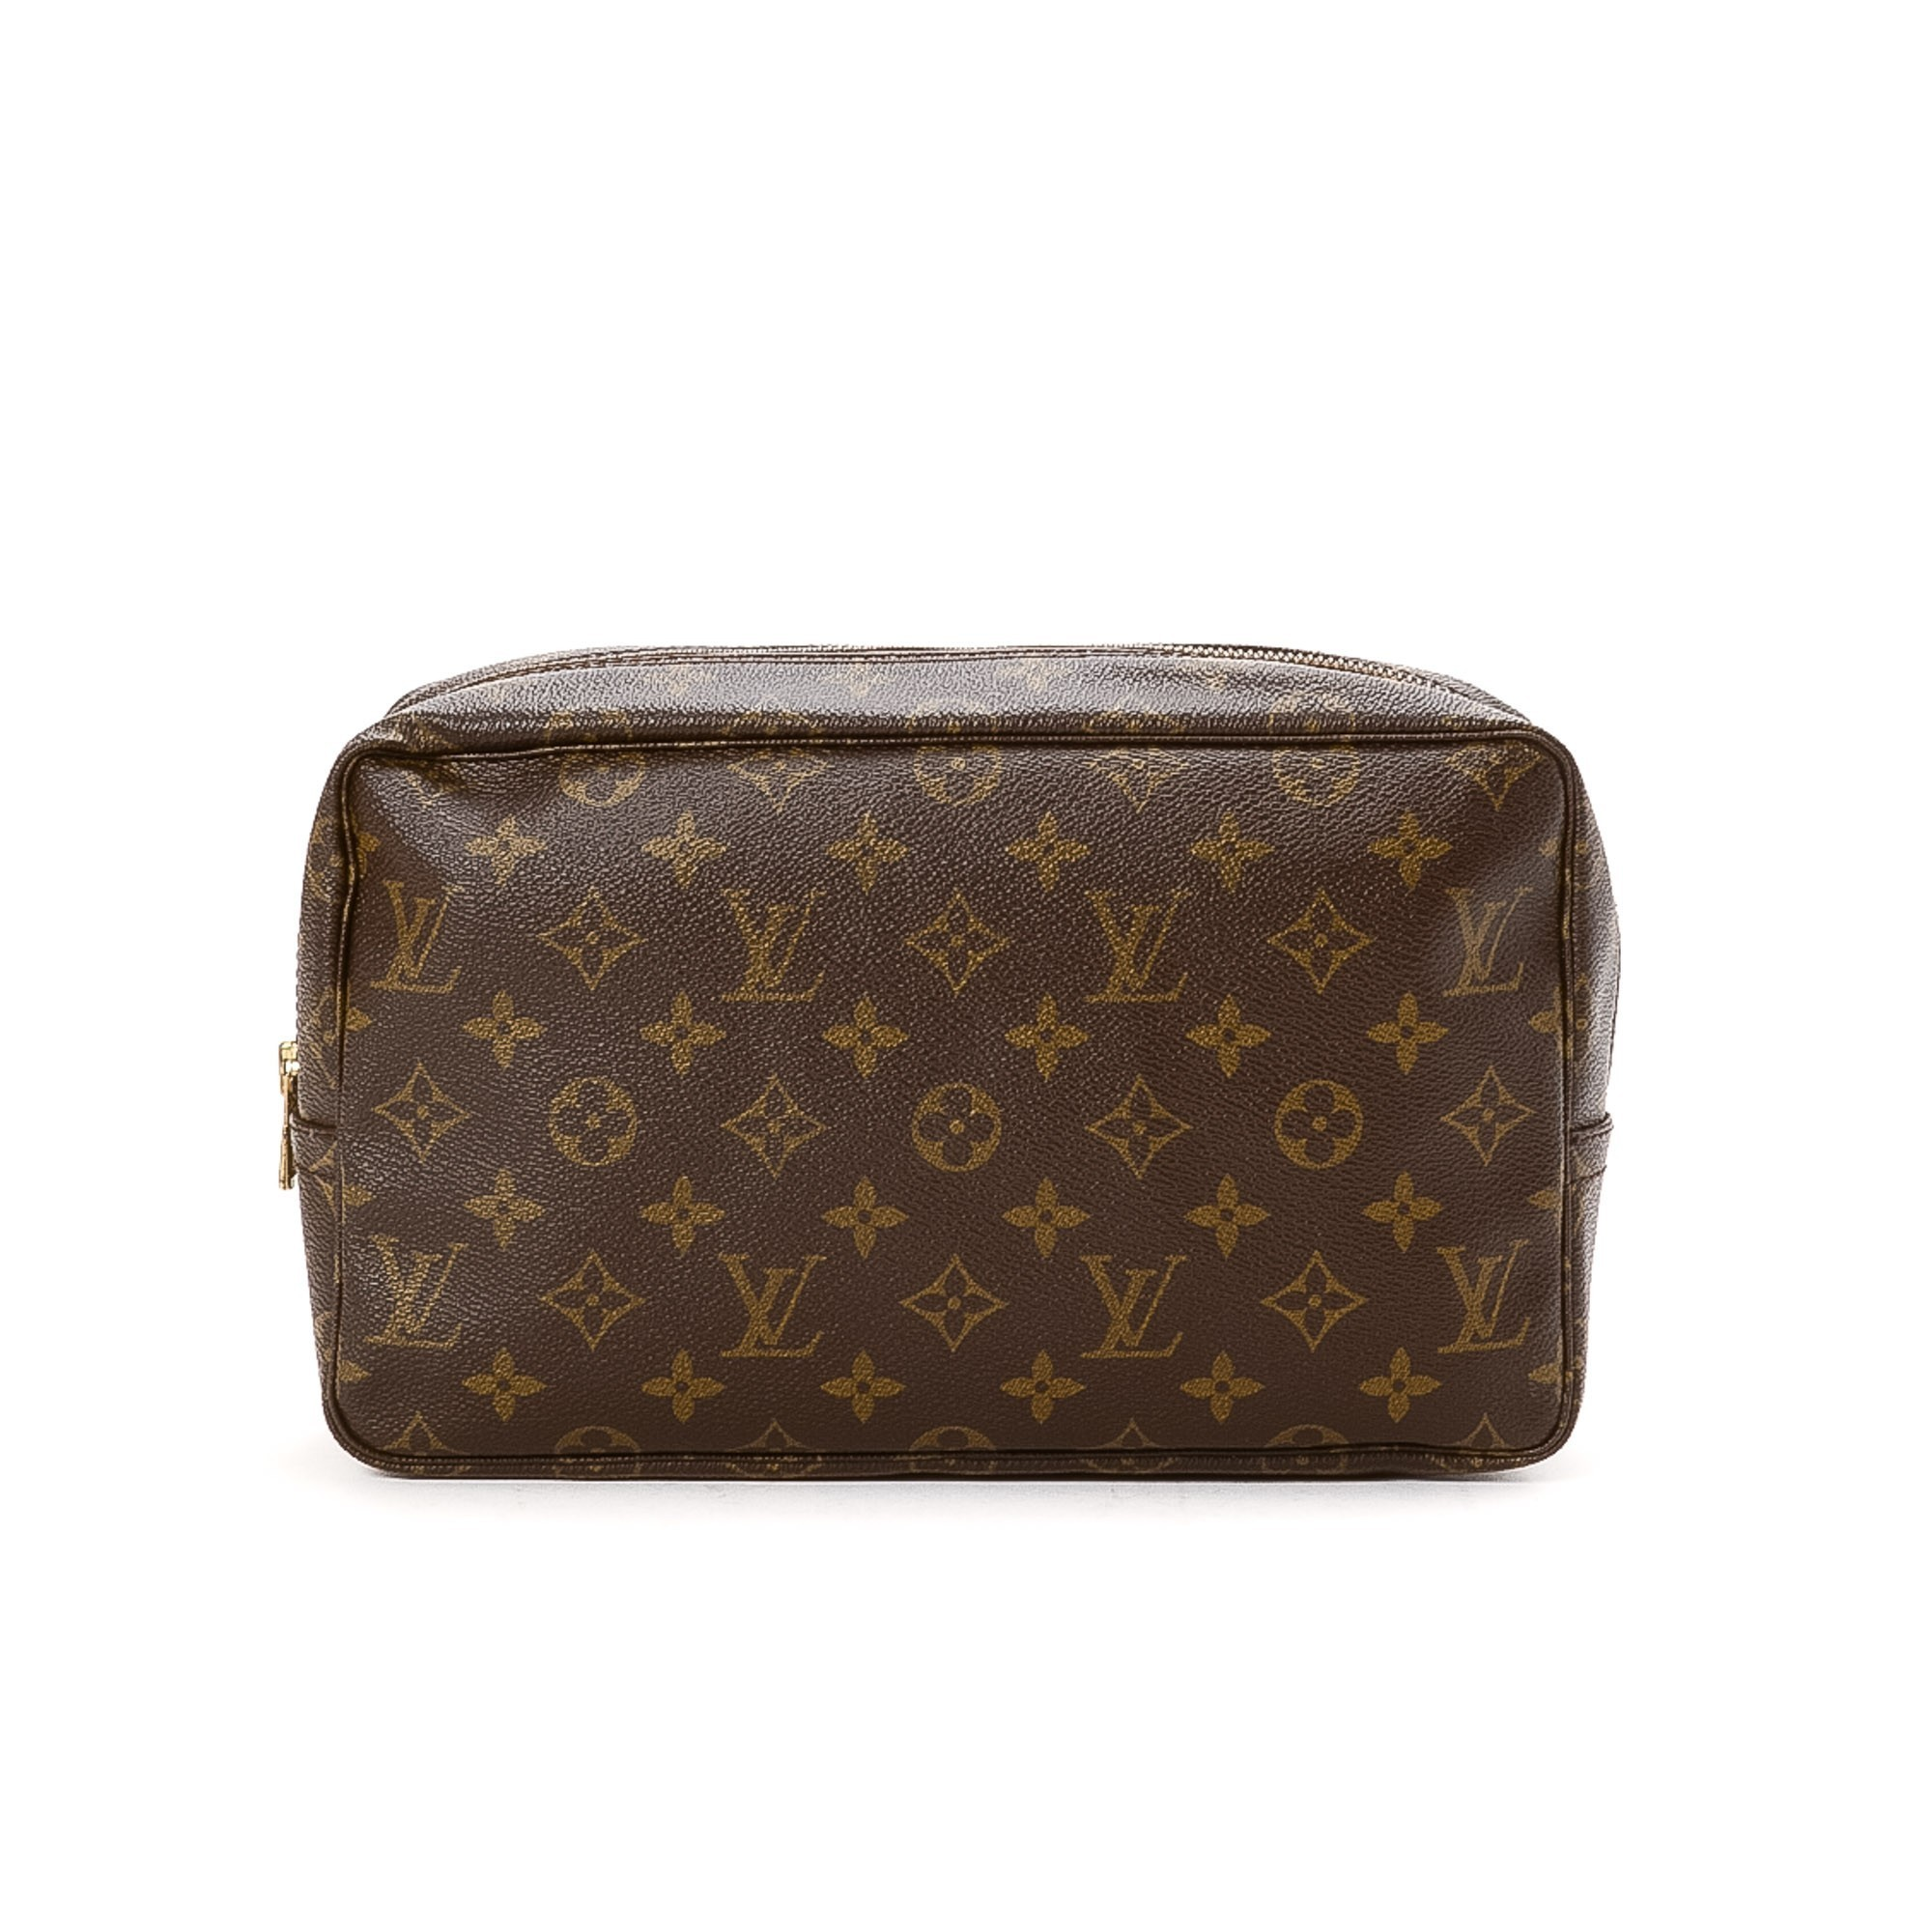 louis vuitton trousse de toilette 28 monogram brown coated canvas vanity pouch lxr co